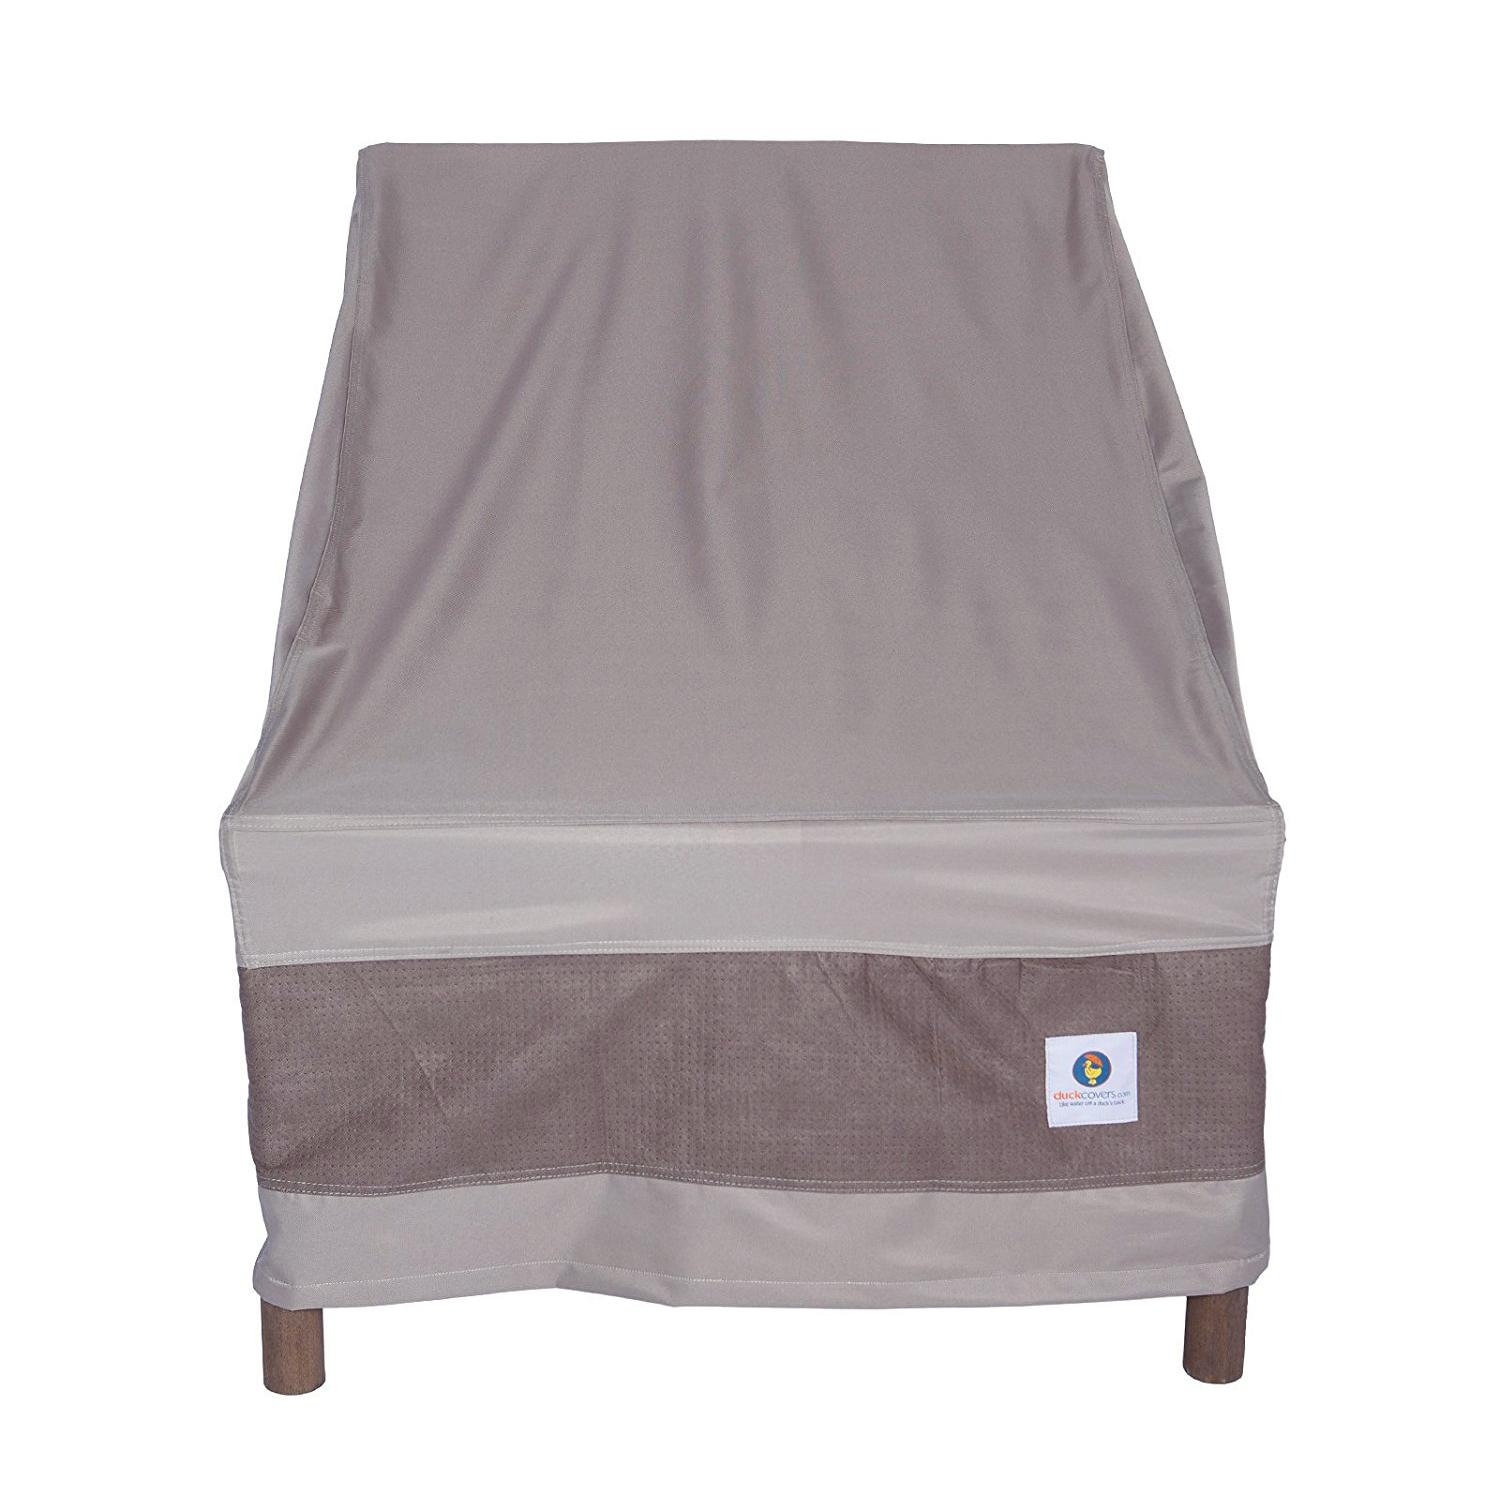 Duck Covers Elegant Stackable Patio Chair Cover Fits